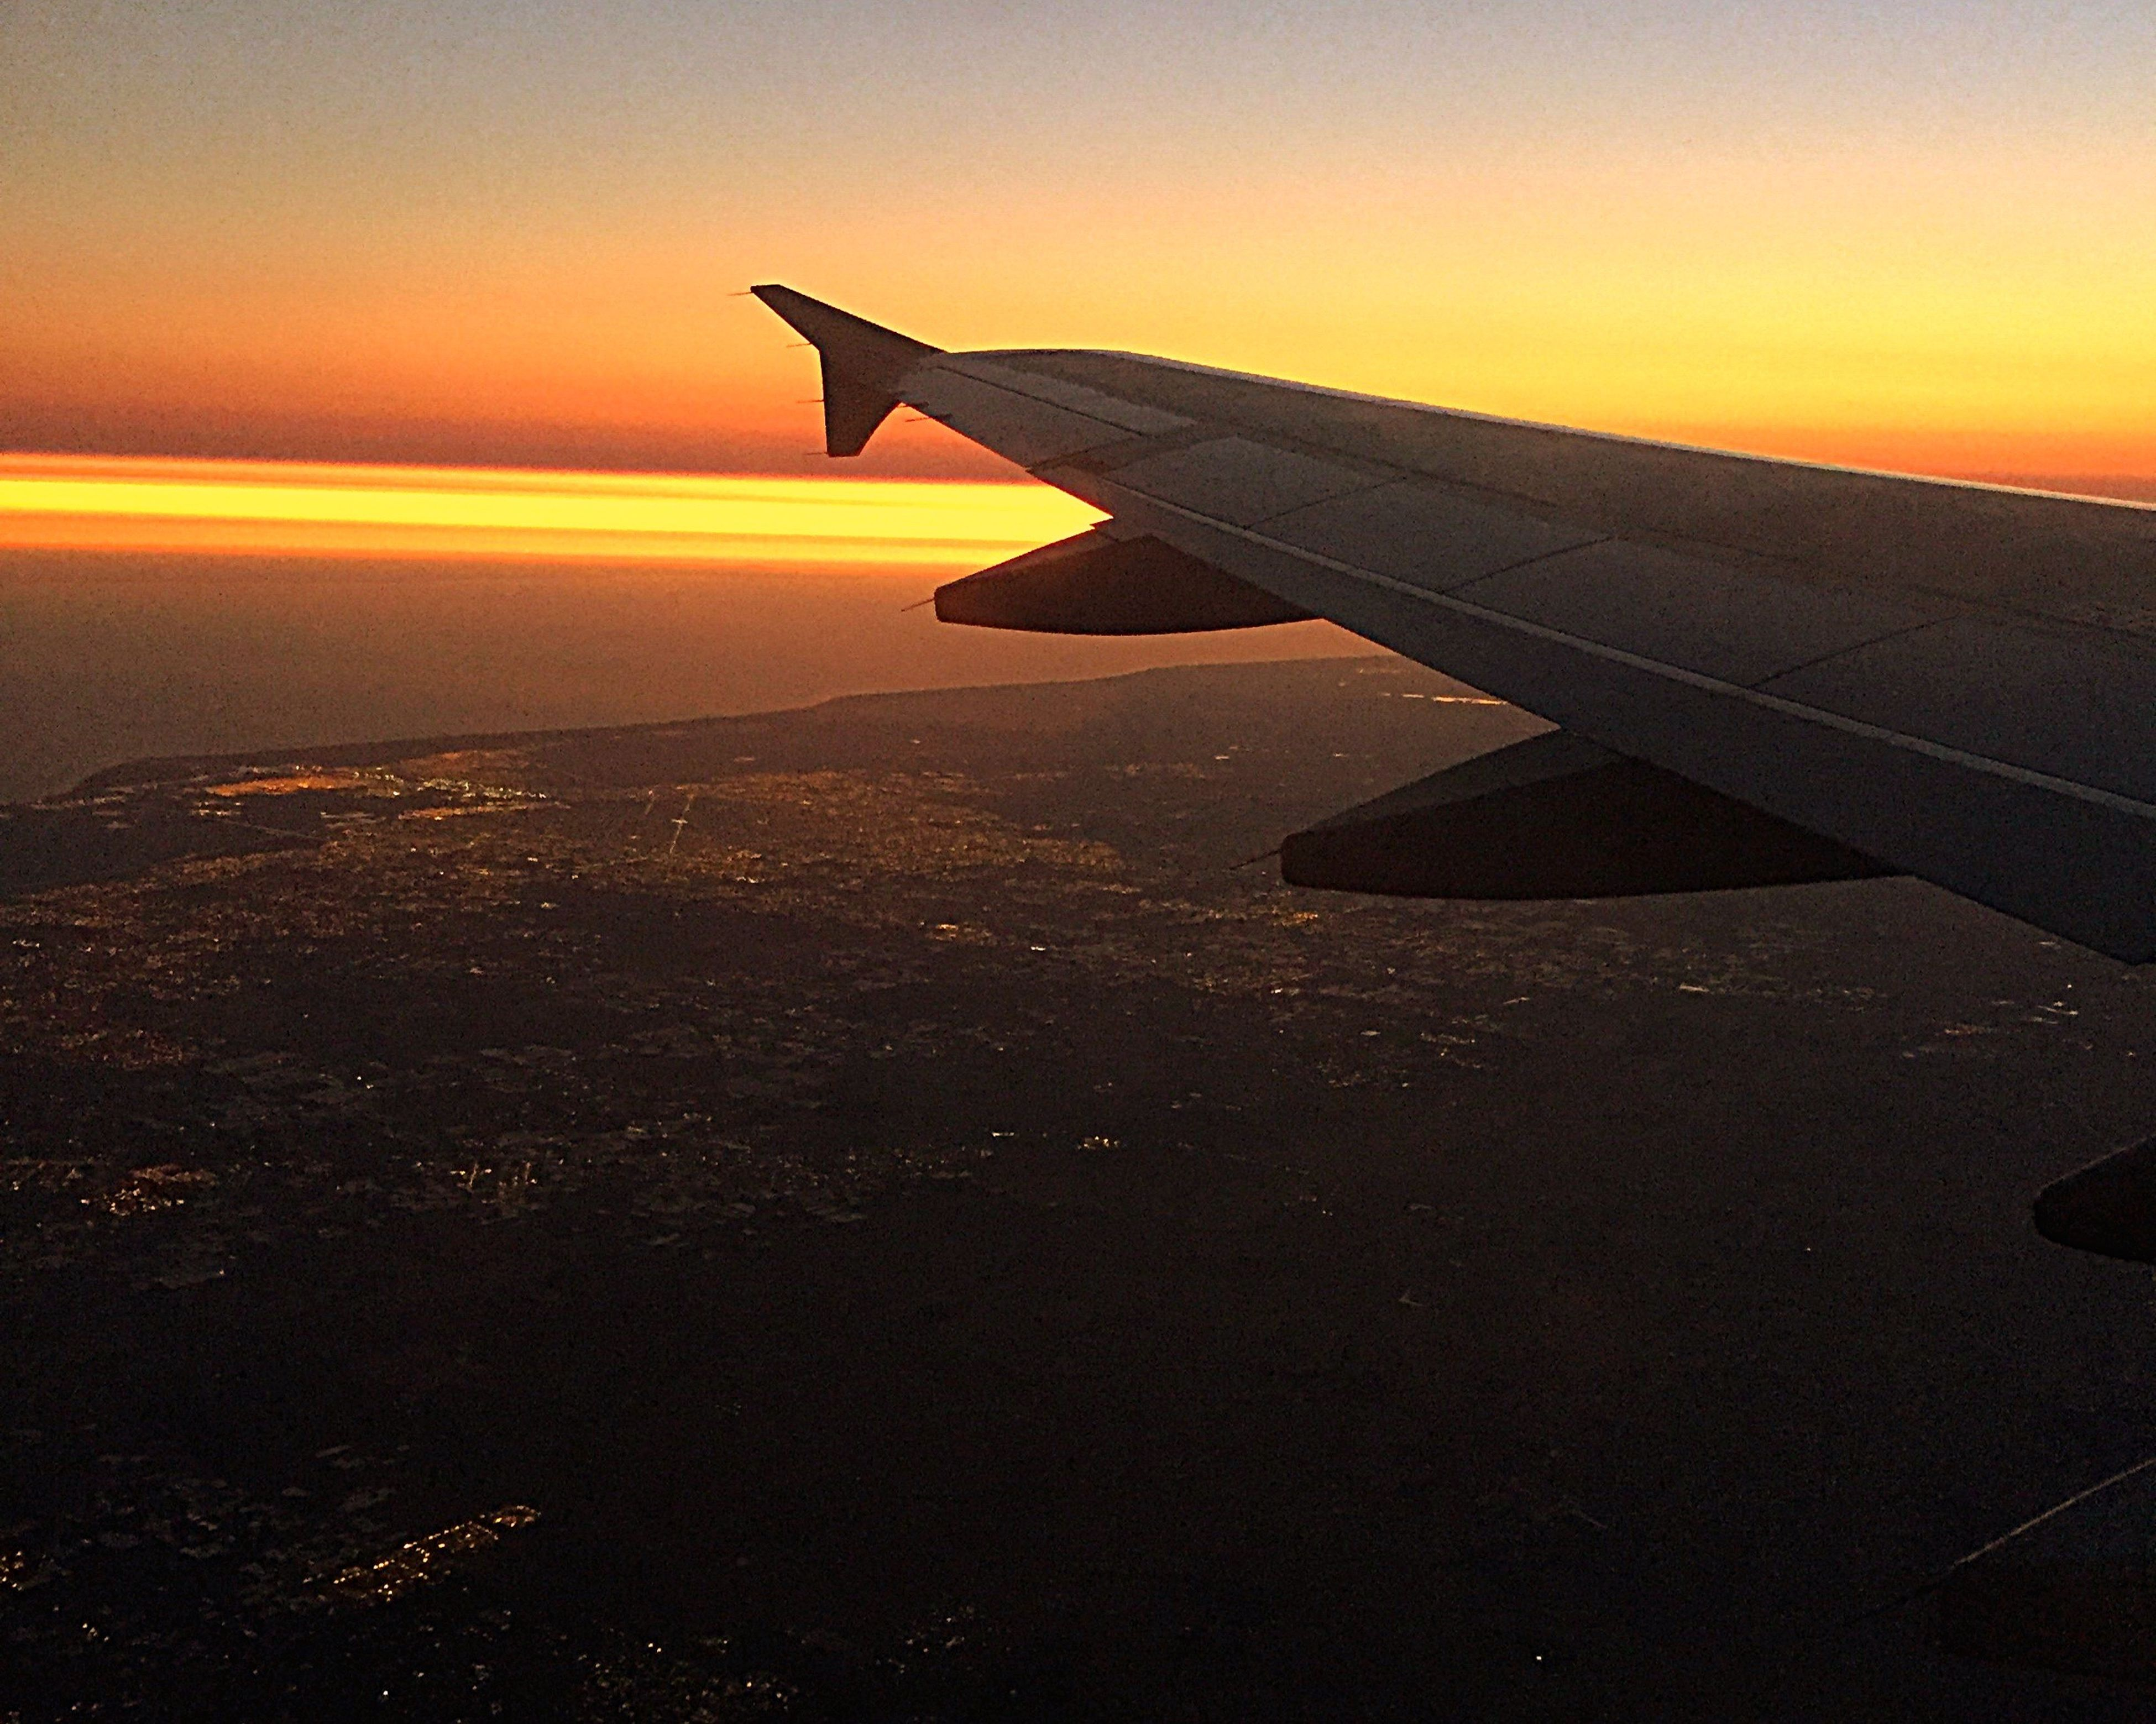 sunset, aircraft wing, airplane, nature, commercial airplane, aerial view, no people, scenics, sky, horizon over water, outdoors, water, air vehicle, cityscape, day